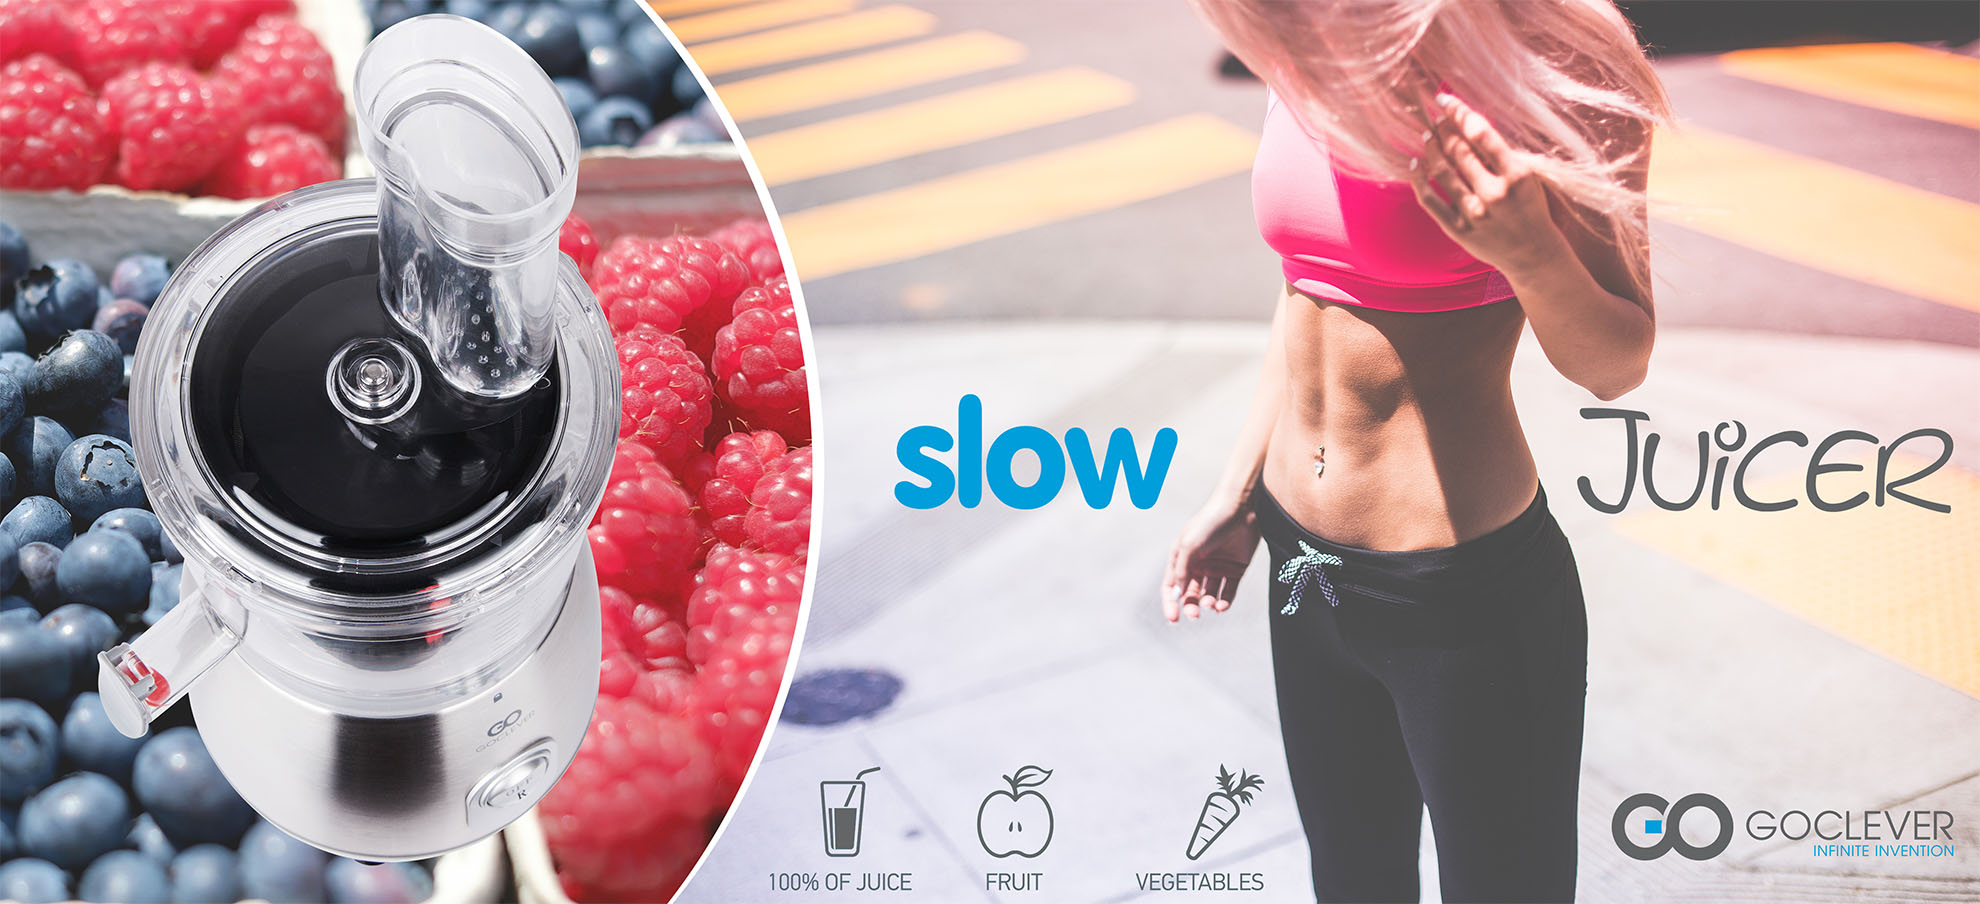 Slow Juicer Como Usar : Maquina de Sumos GoClever Slow Juicer - Limifield